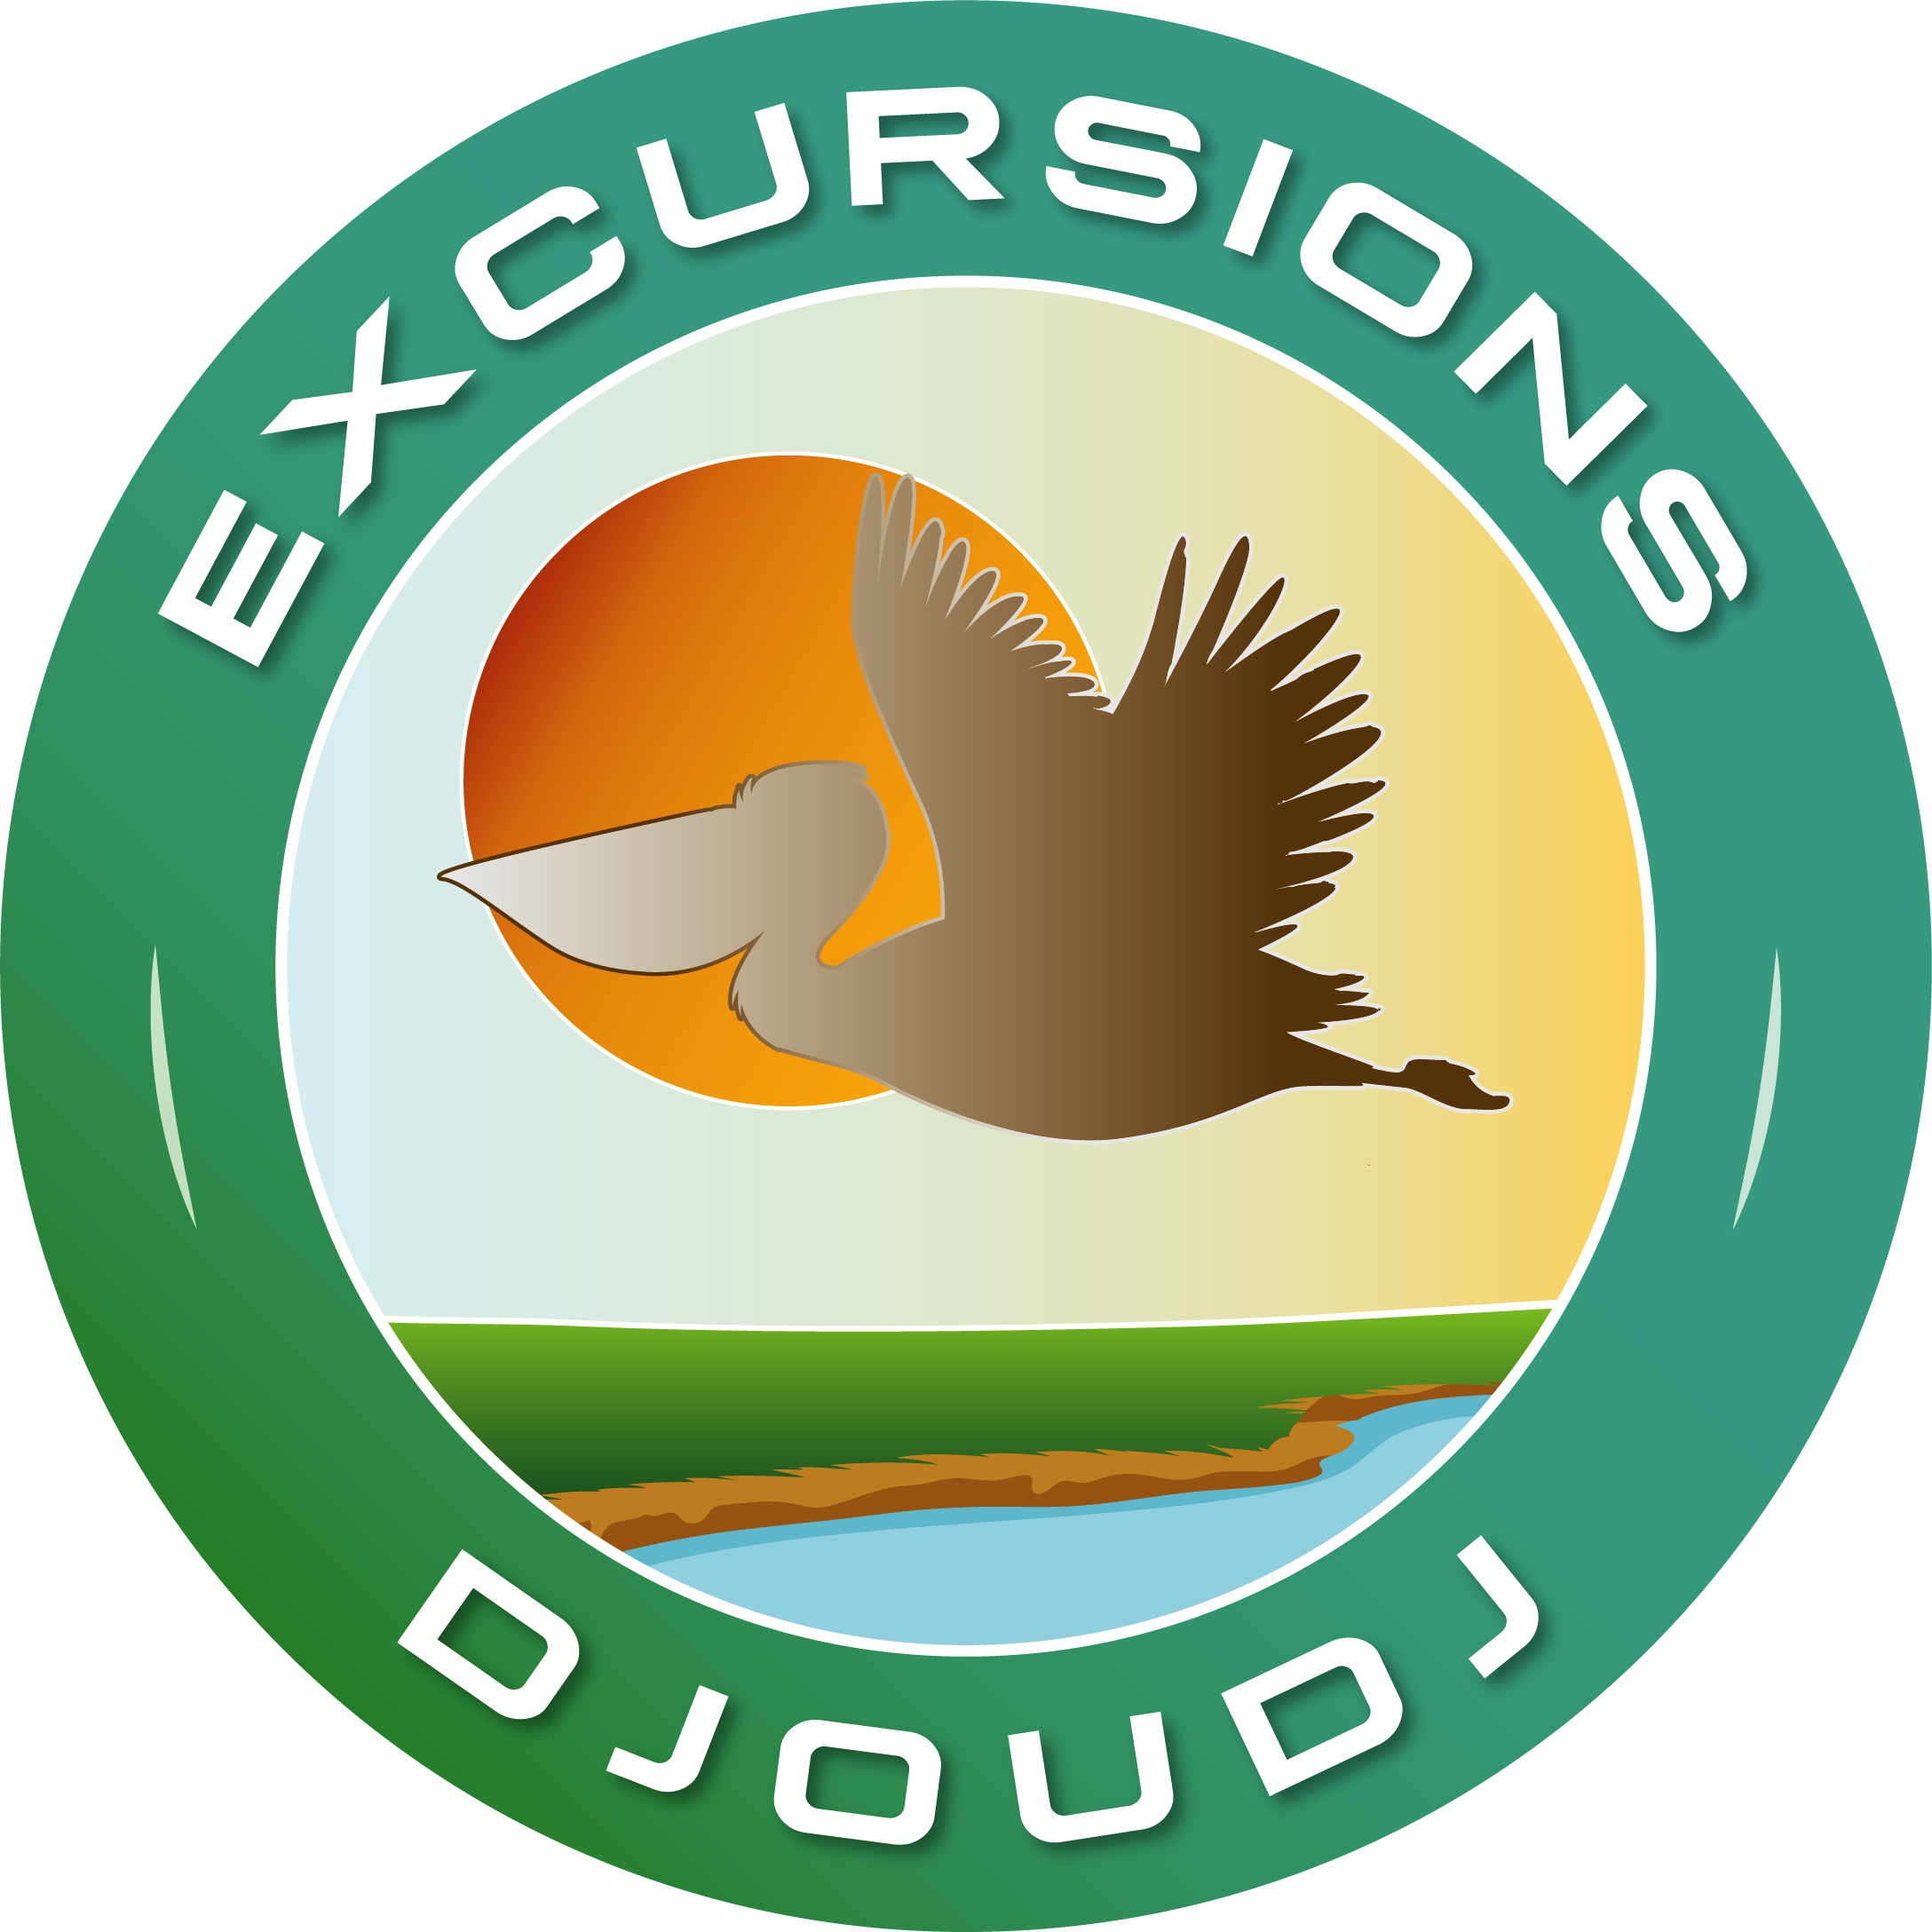 Excursions Djoudj